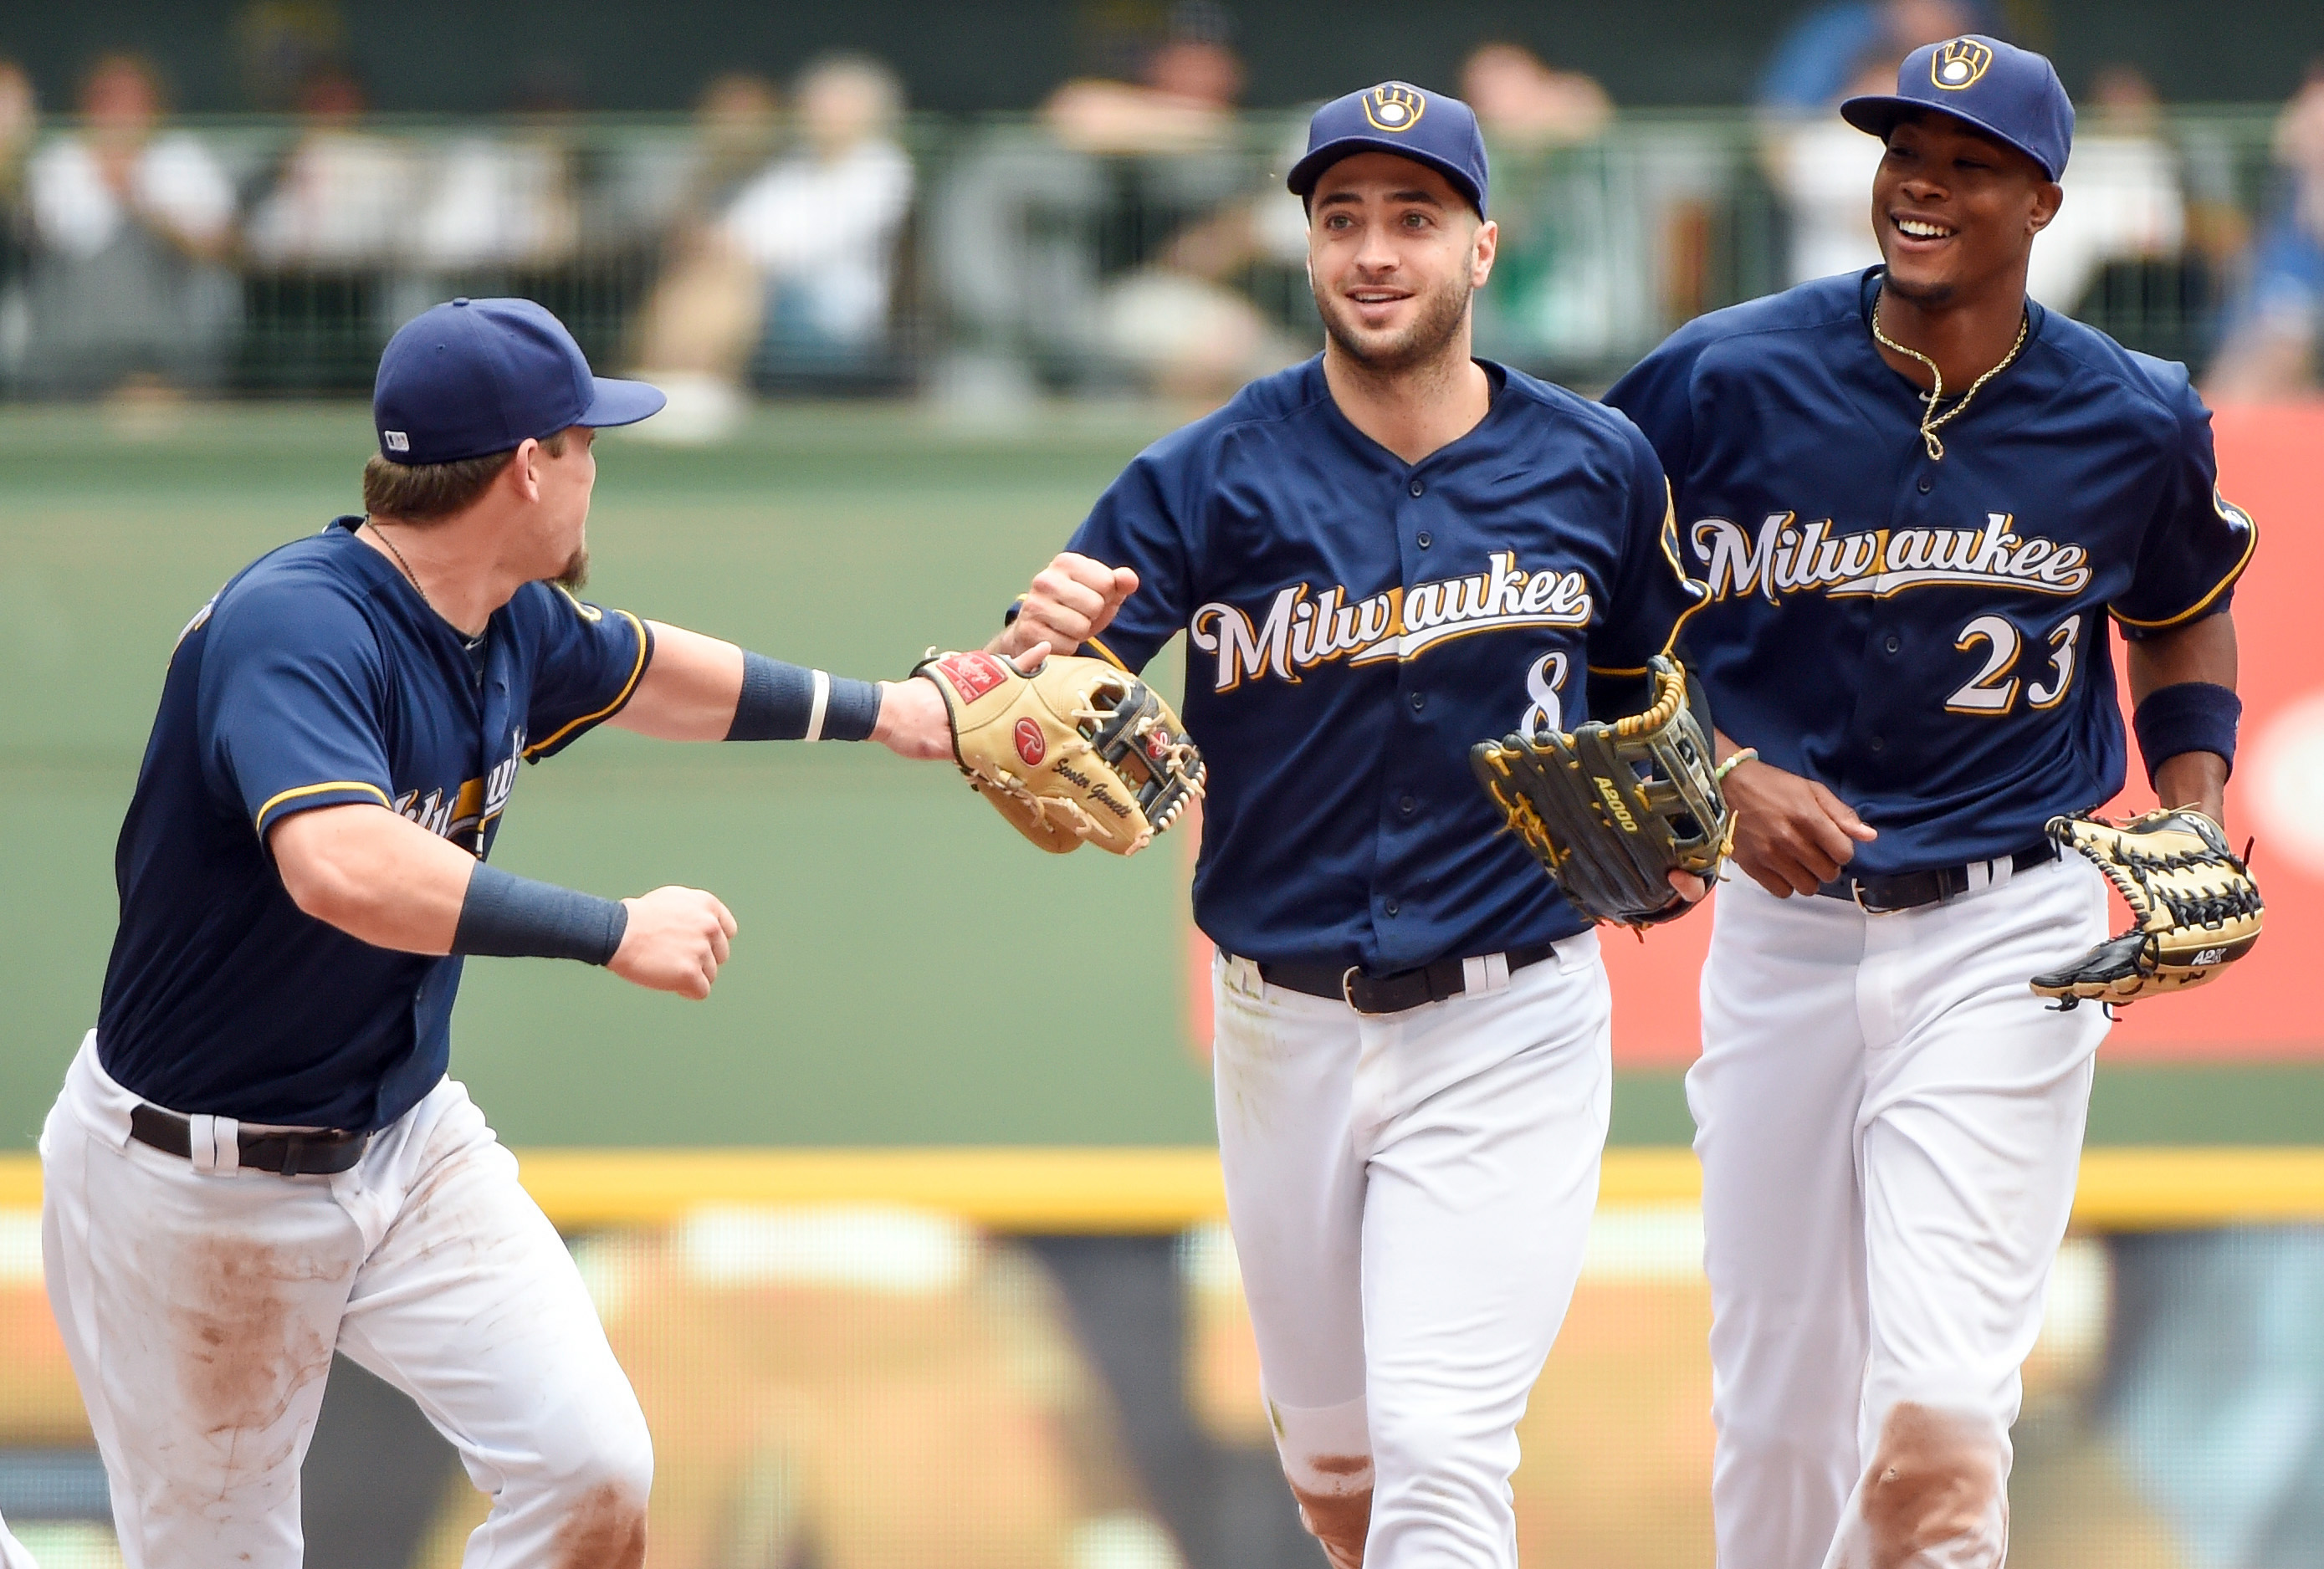 9337722-mlb-new-york-mets-at-milwaukee-brewers